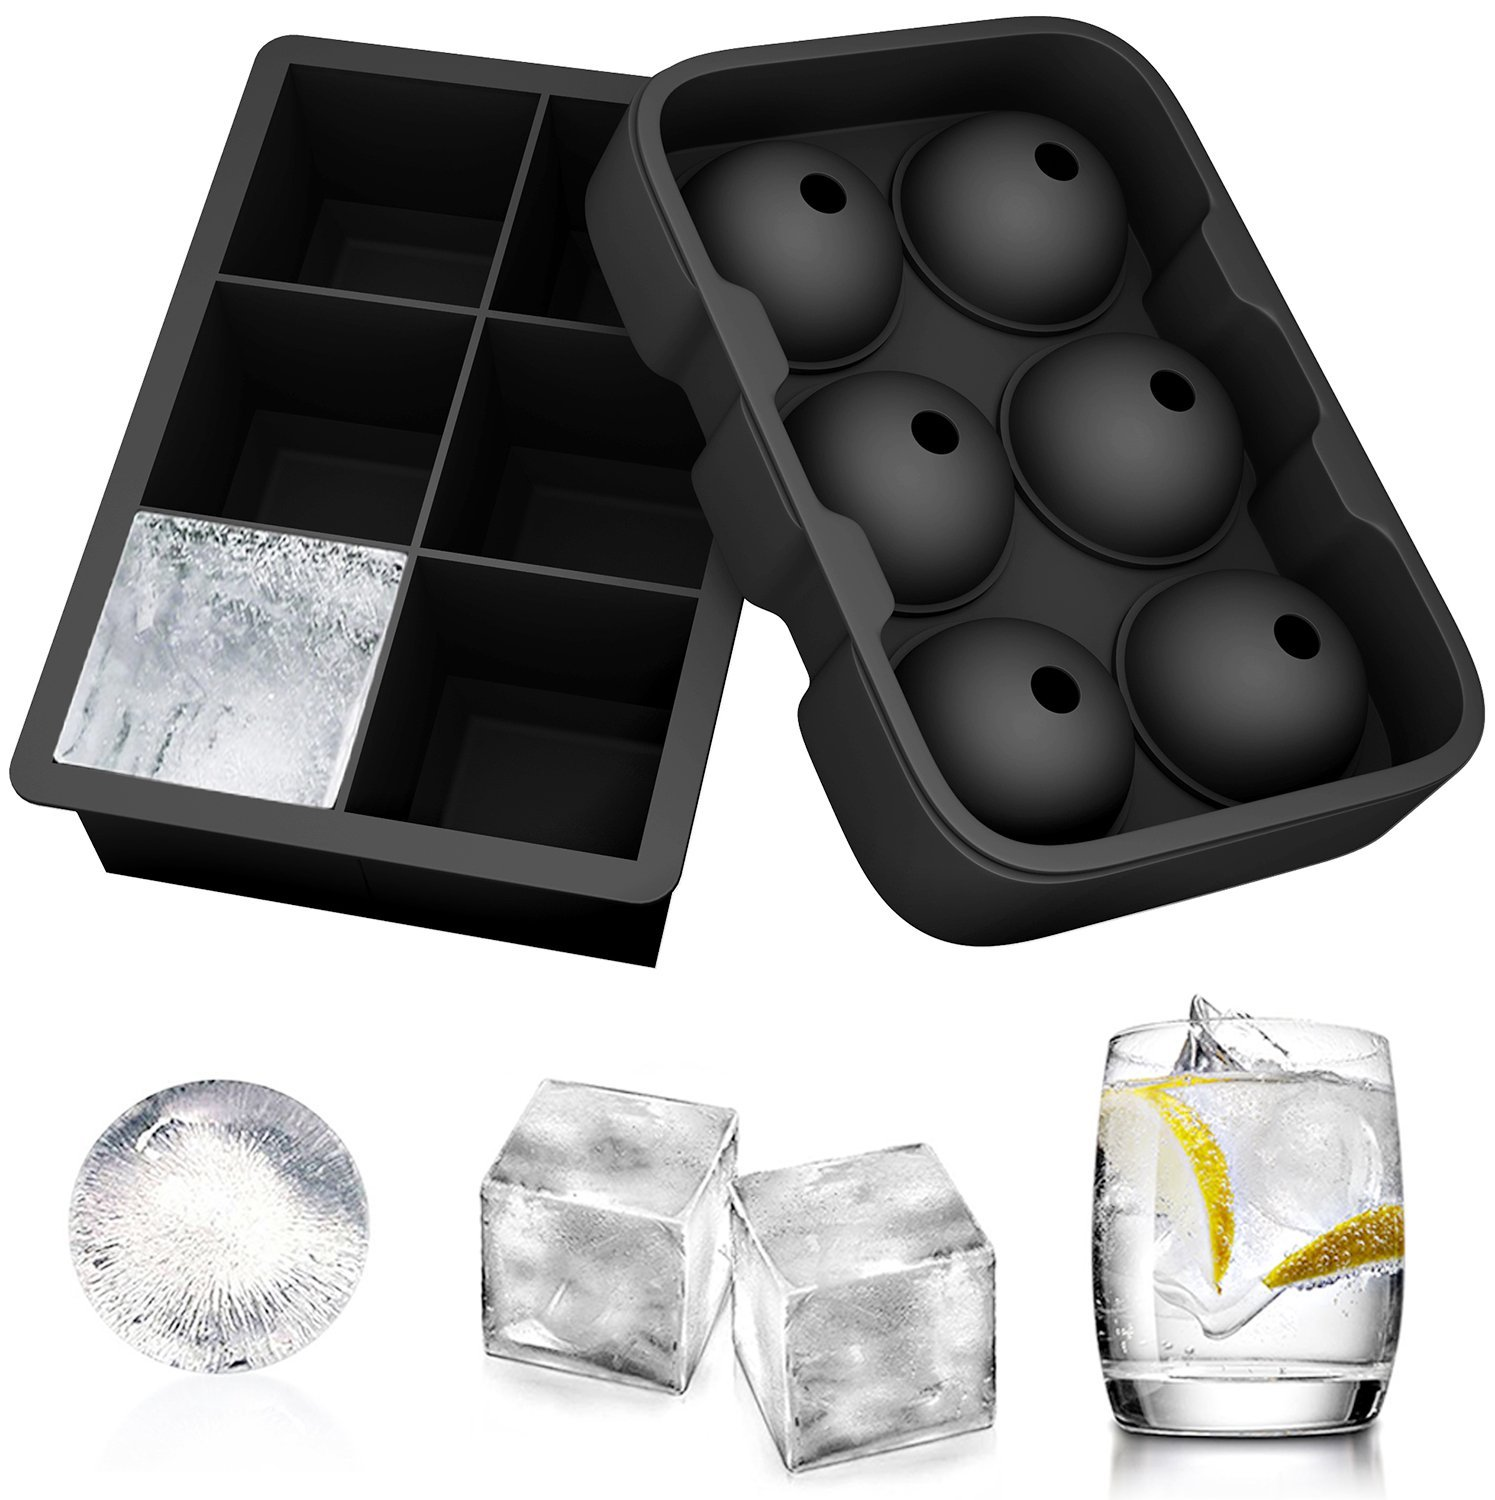 Ouddy Silicone Ice Cube Molds, Set of 2 Sphere Round Ice Ball Maker & Large Square Ice Cube Mold Ice Cube Trays